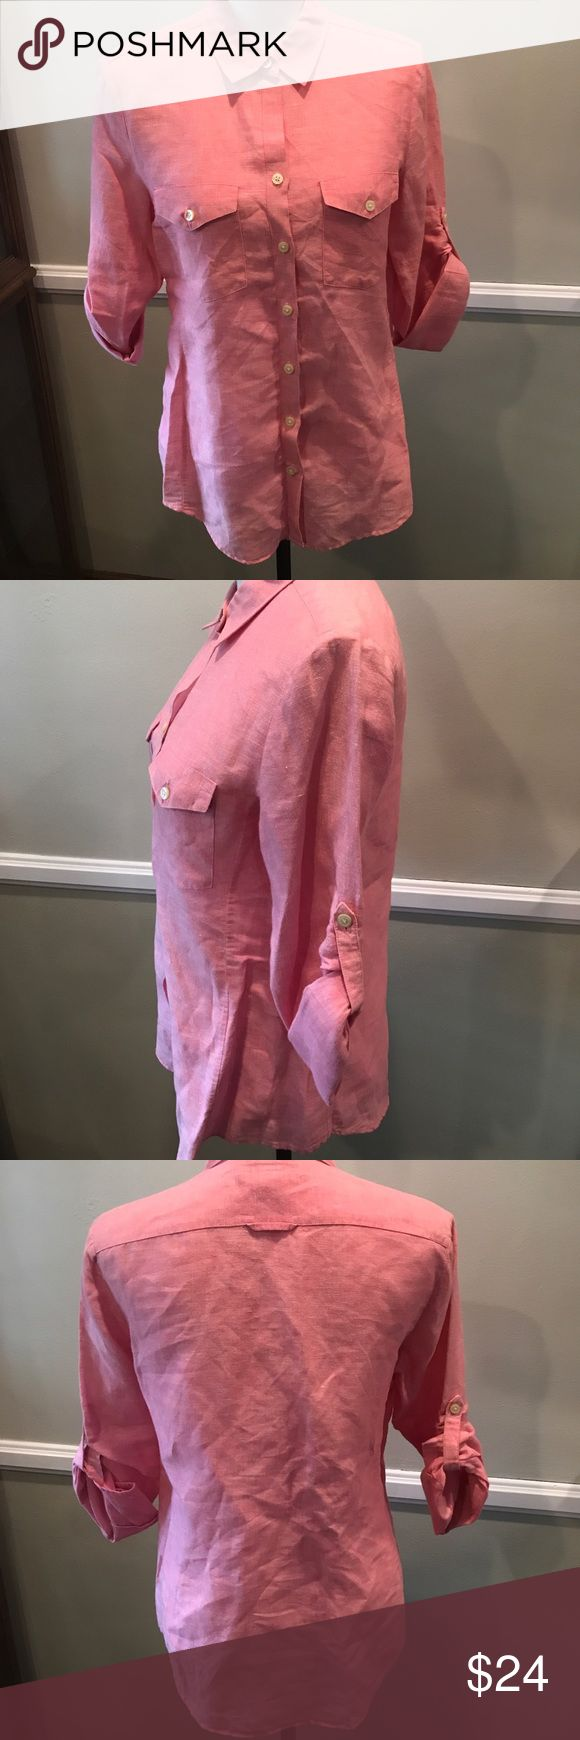 Banana republic pink button down Tshirt longsleeve Armpit to armpit across is 19.5 inches, total length is 29 inches. Great condition Banana Republic Tops Button Down Shirts